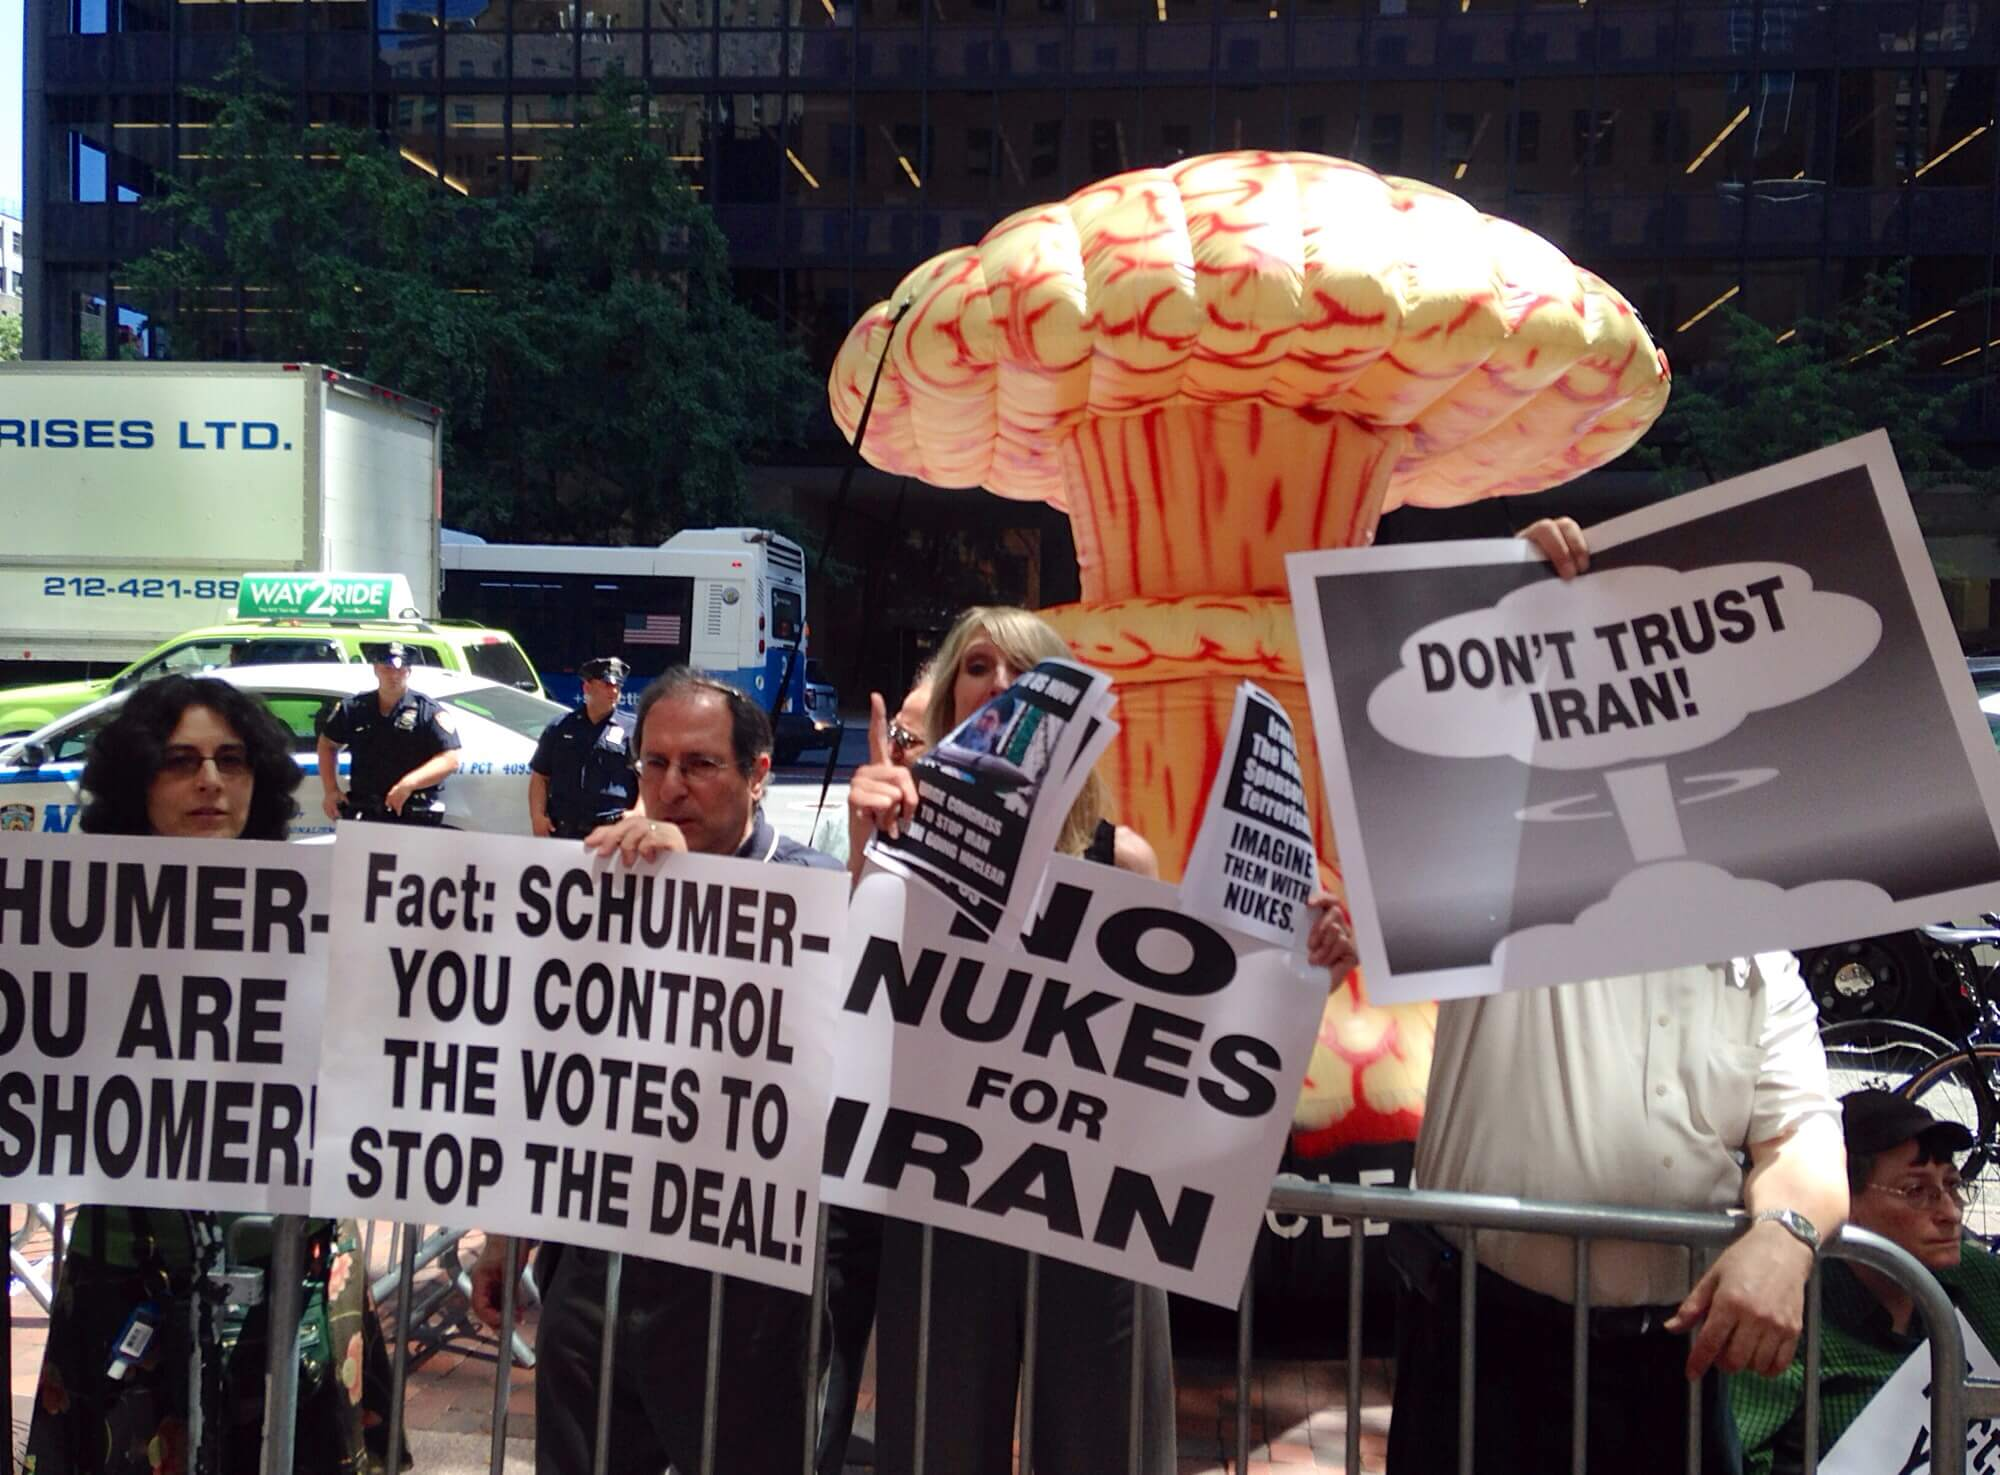 Supporters of Schumer's decision demonstrate against the deal in front of a large inflatable mushroom cloud. (Photo: Eamon Murphy)